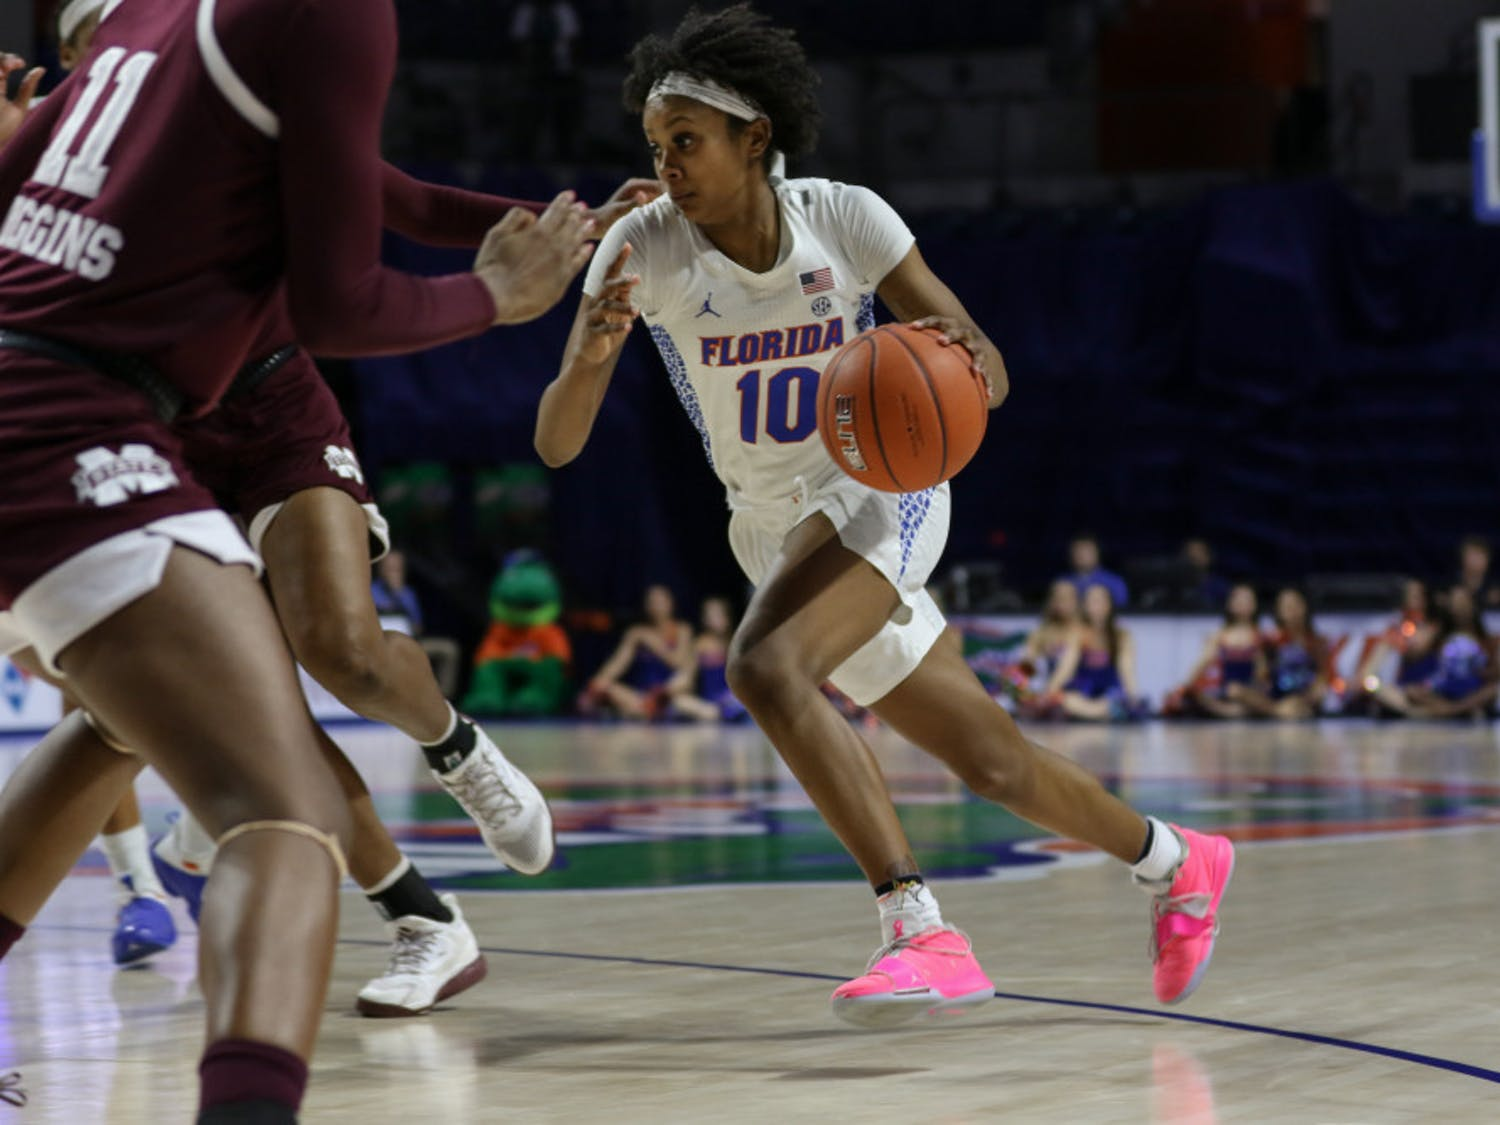 Guard Danielle Rainey paced the Gators offensively against the Wildcats. She had 20 points on 7-of-10 shooting in the Gators' 62-51 loss at Rupp Arena.